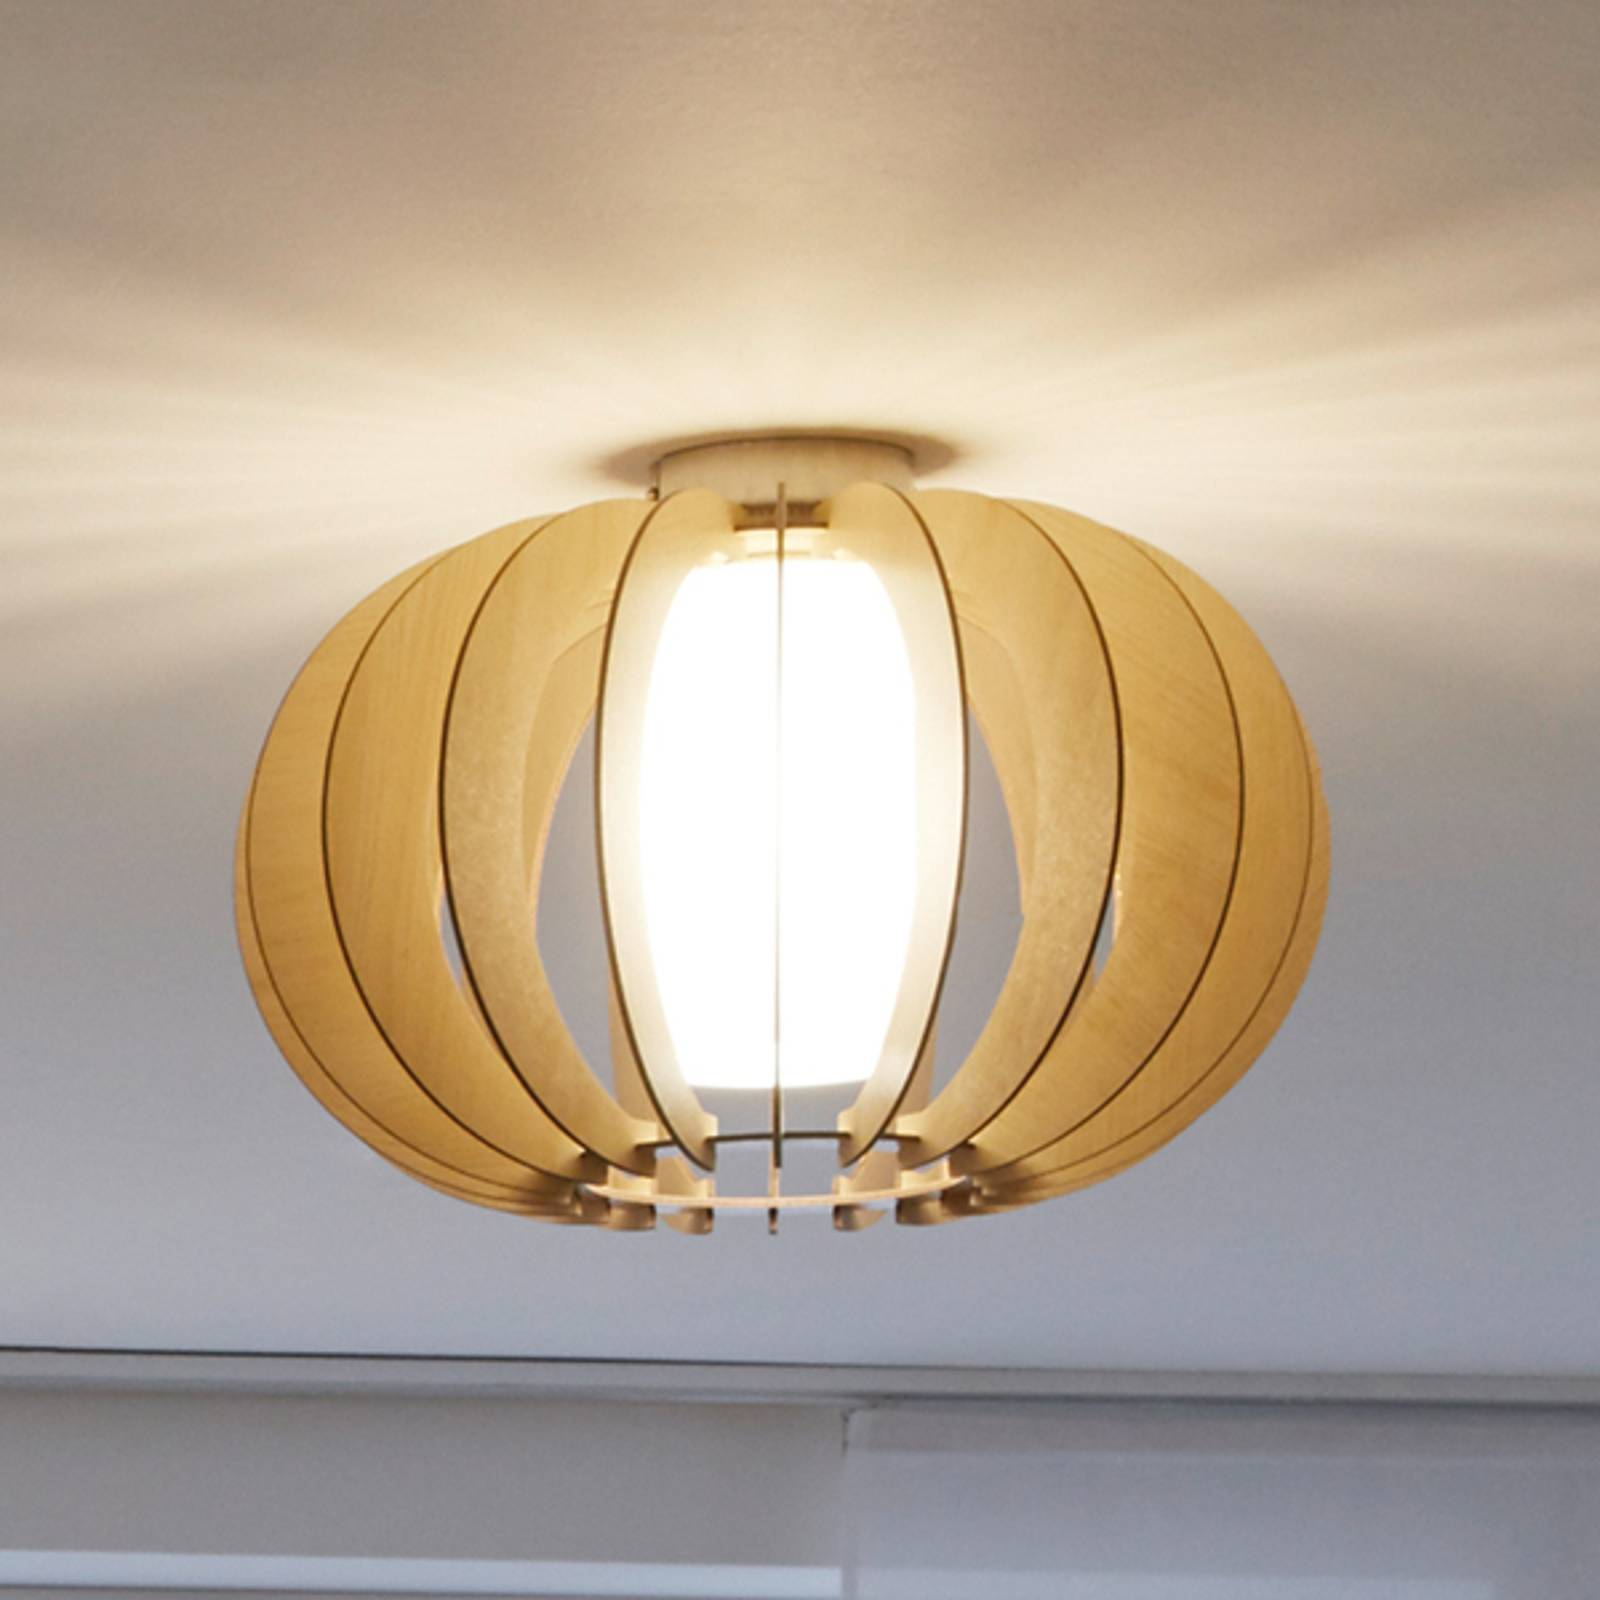 Natural-looking Stellato ceiling lamp from EGLO